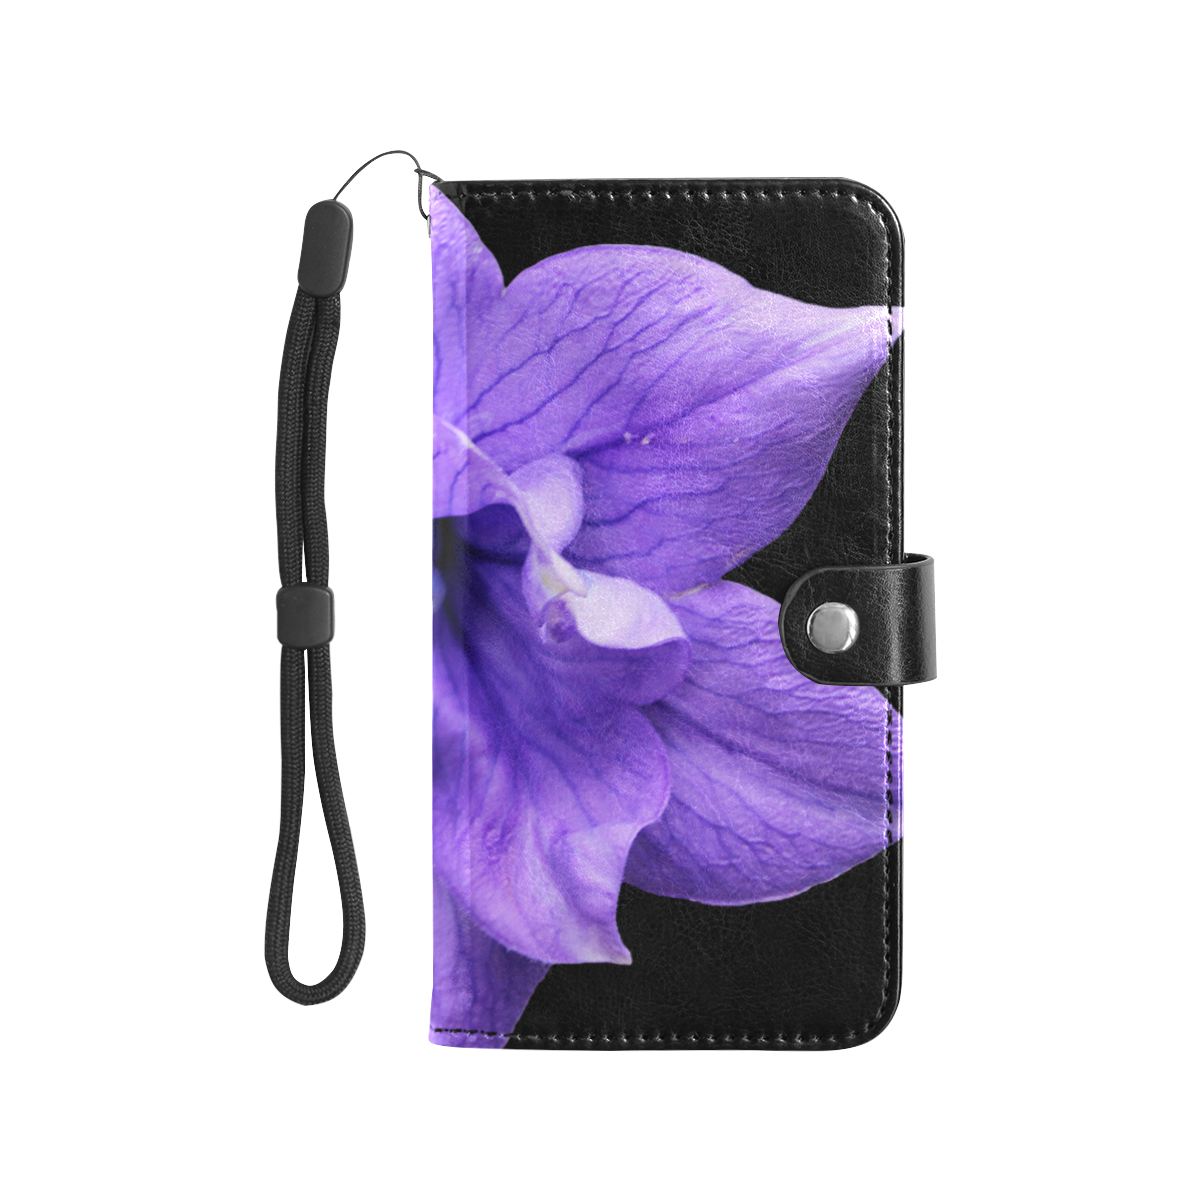 Balloon Flower Flip Leather Purse for Mobile Phone/Large (Model 1703)